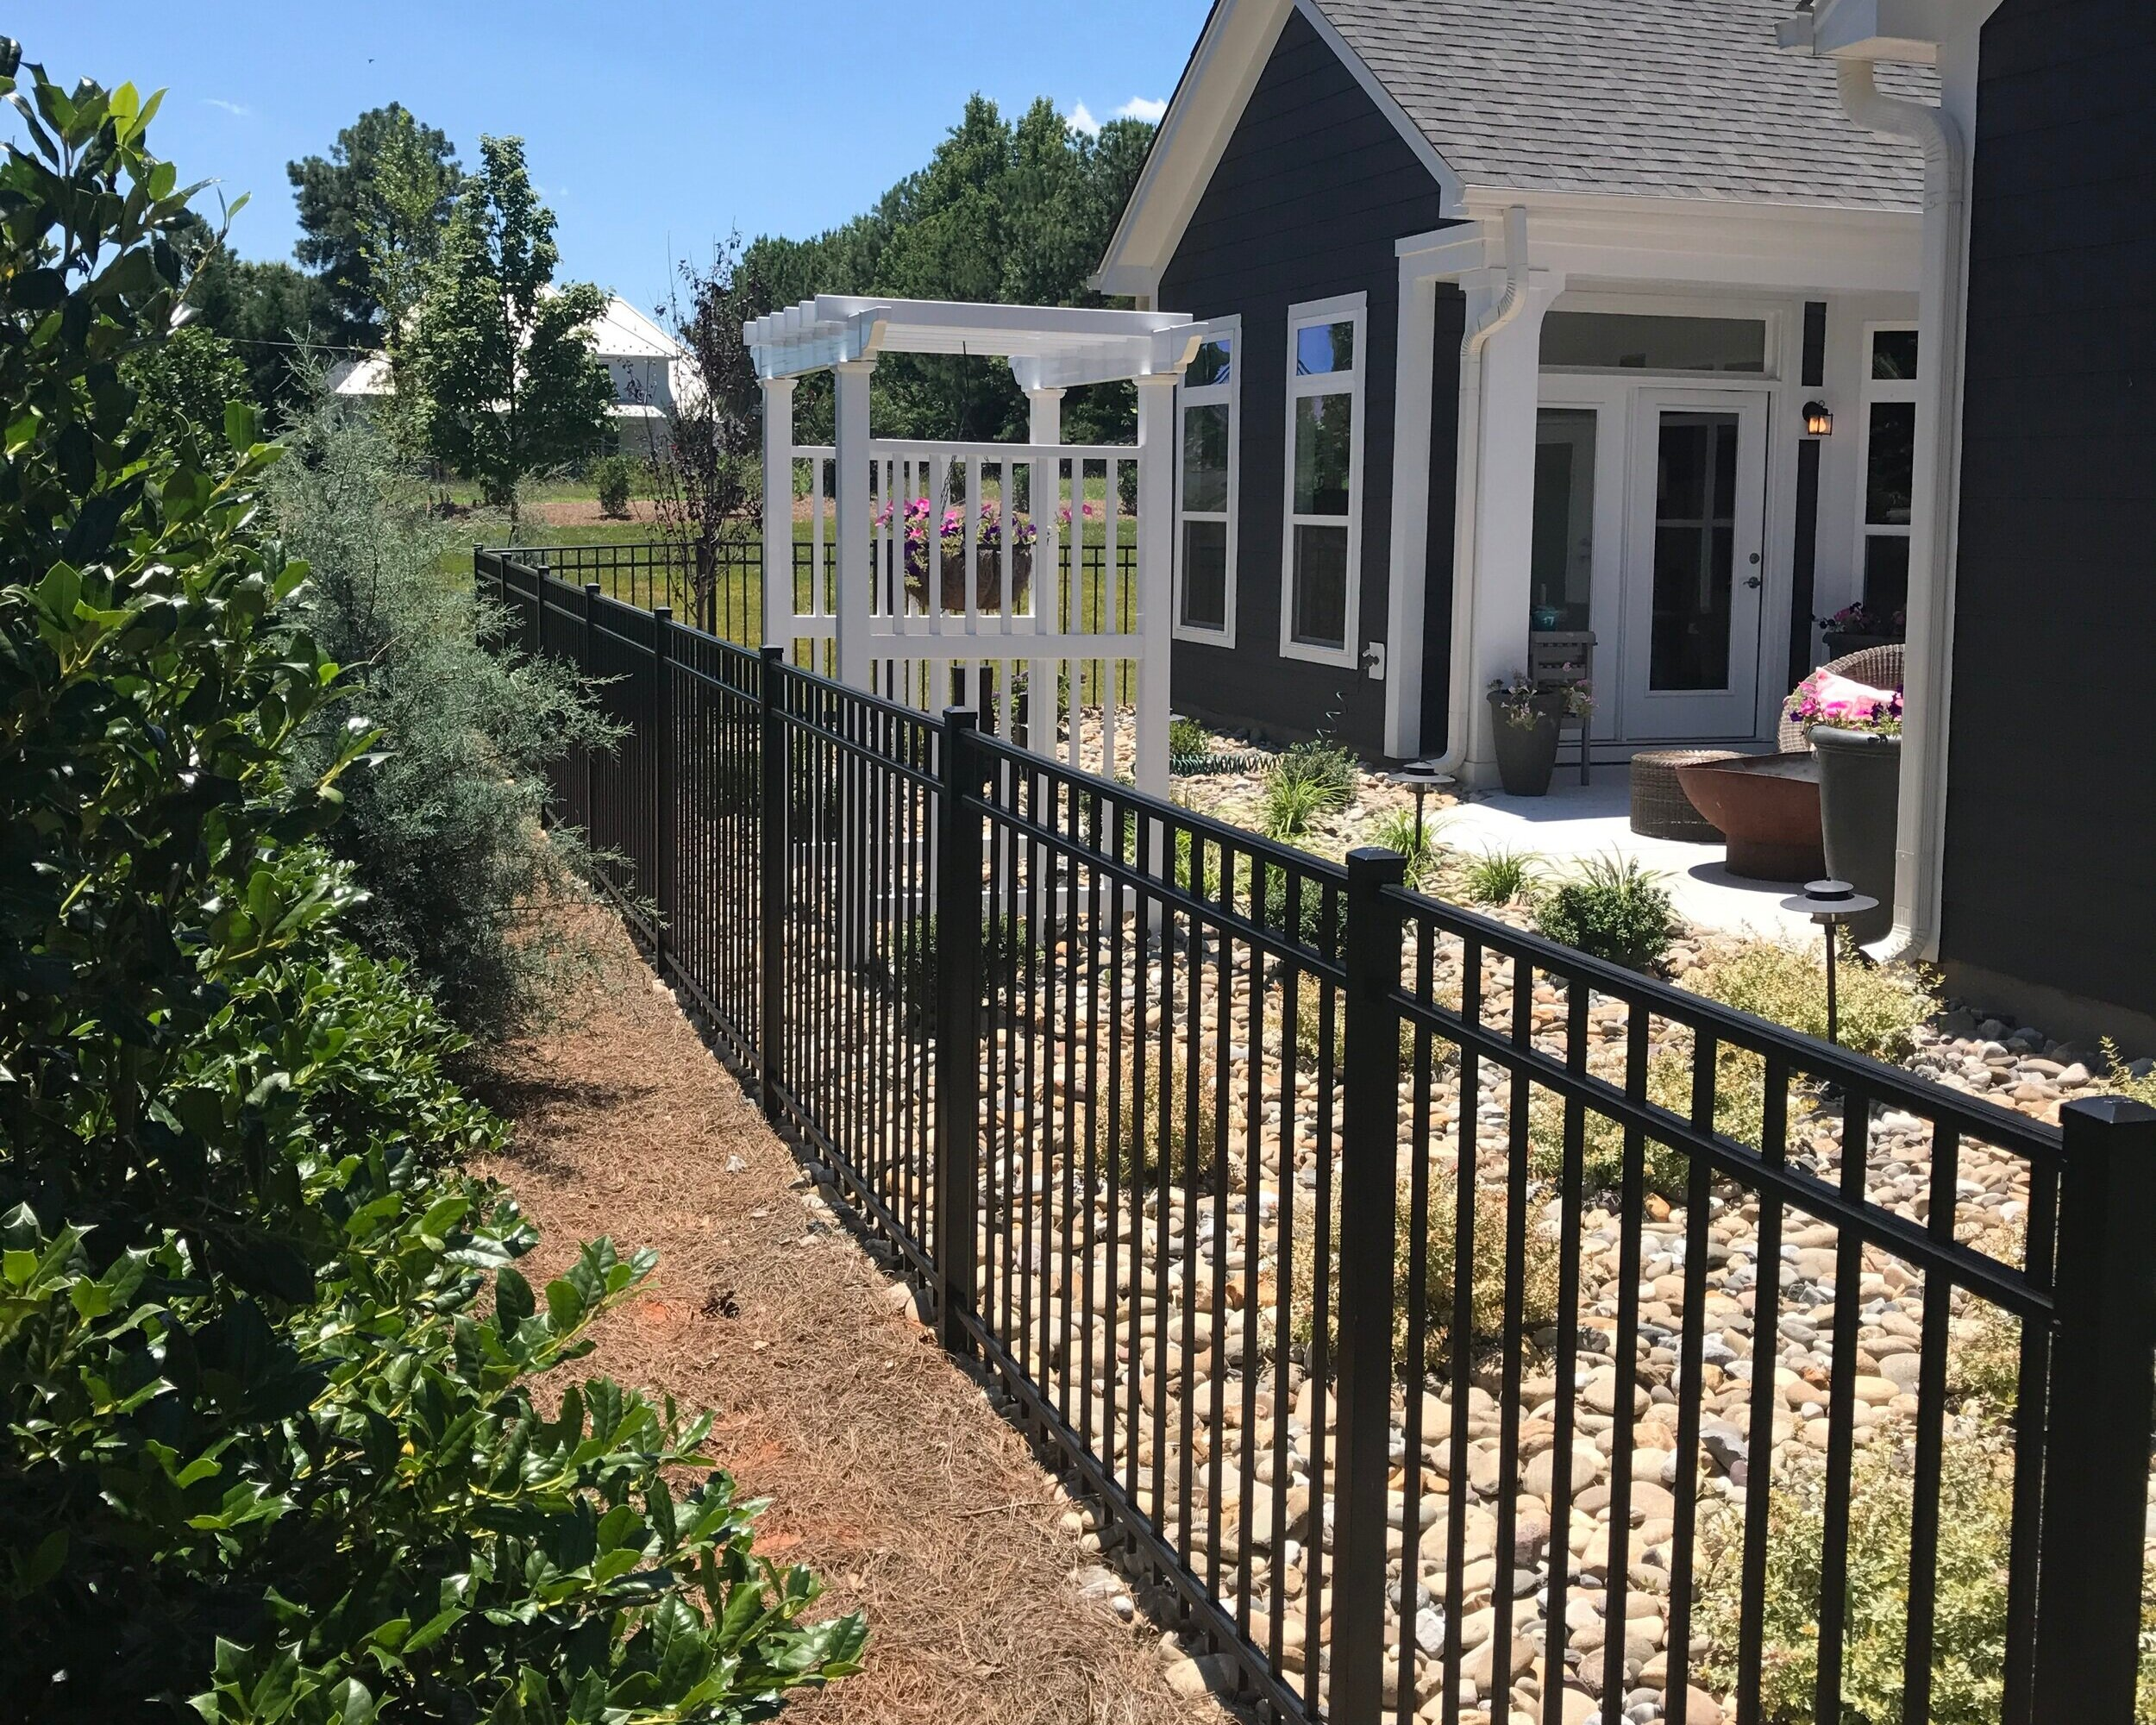 Beautiful ornamental aluminum fence manufactured by Alumi-Guard with a vinyl arbor fabricated by Gaston Fence Co., Inc. all installed by the talents professionals at Gaston Fence.